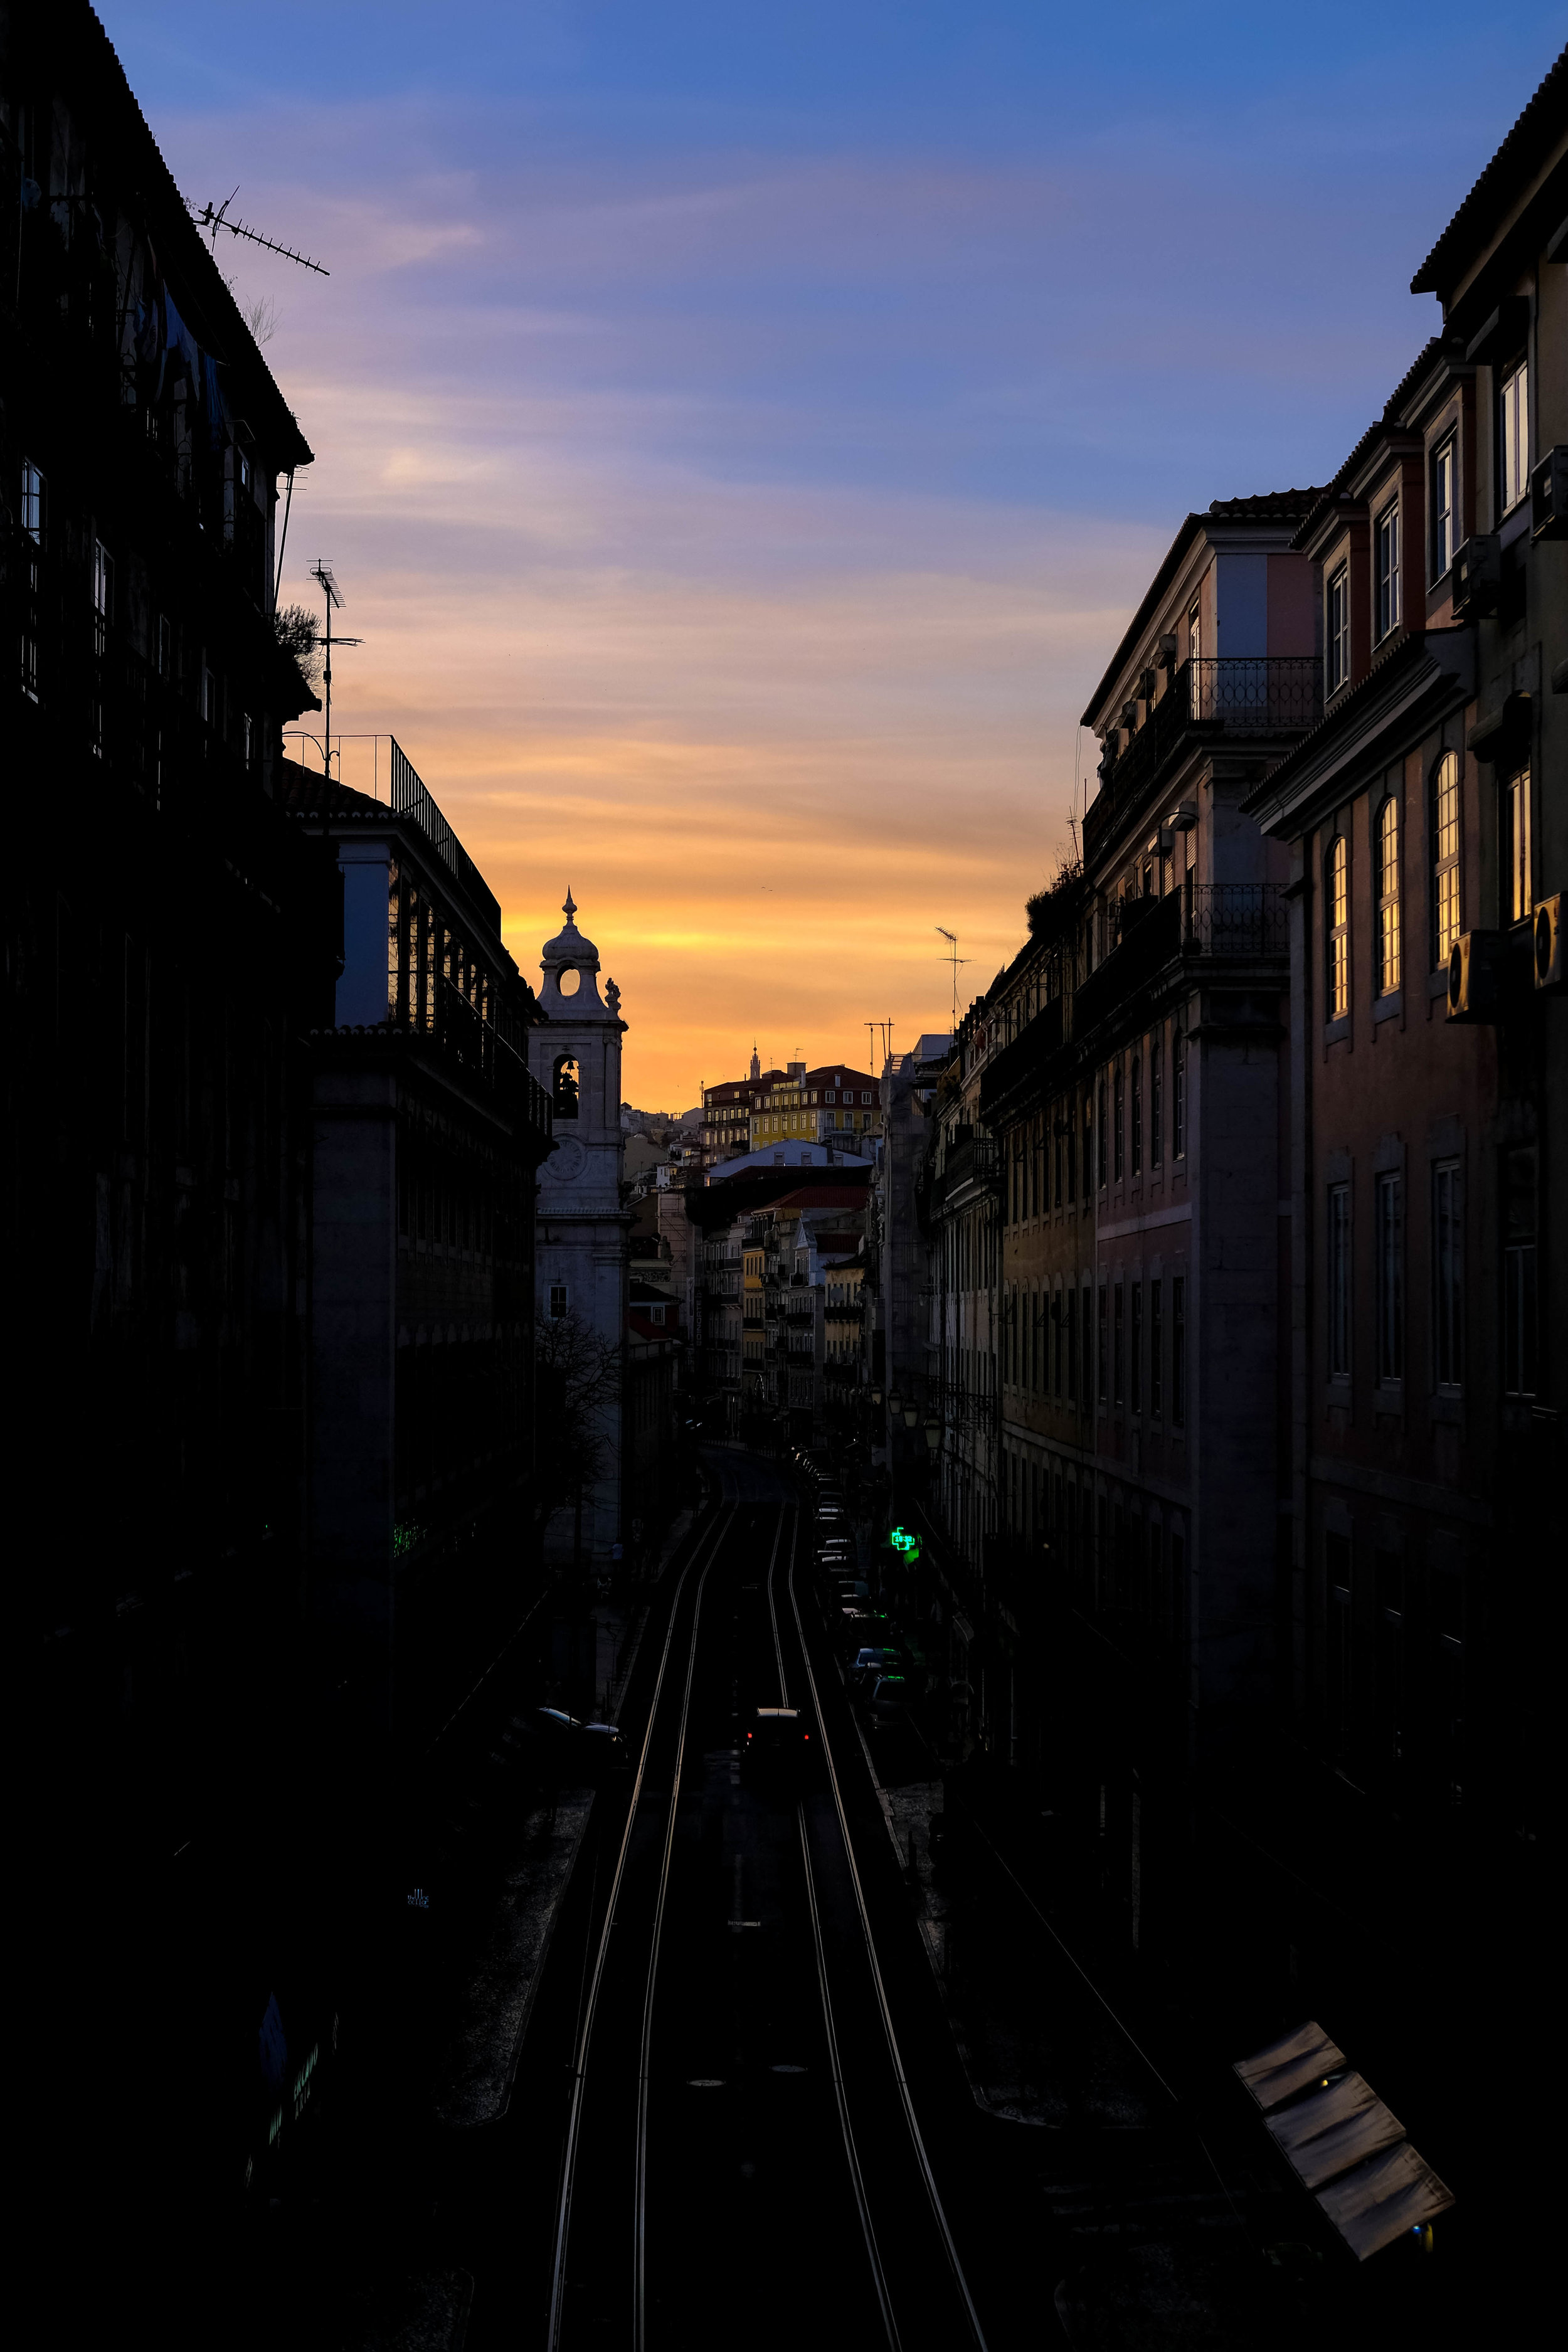 "<p style=""font-family:brandon-grotesque;font-weight:500; font-size:11px; text-center:left; color:light grey;letter-spacing: 1px"">MARCH 6, 2017 • ROSY SKIES • � Lisbon, Portugal</p>"